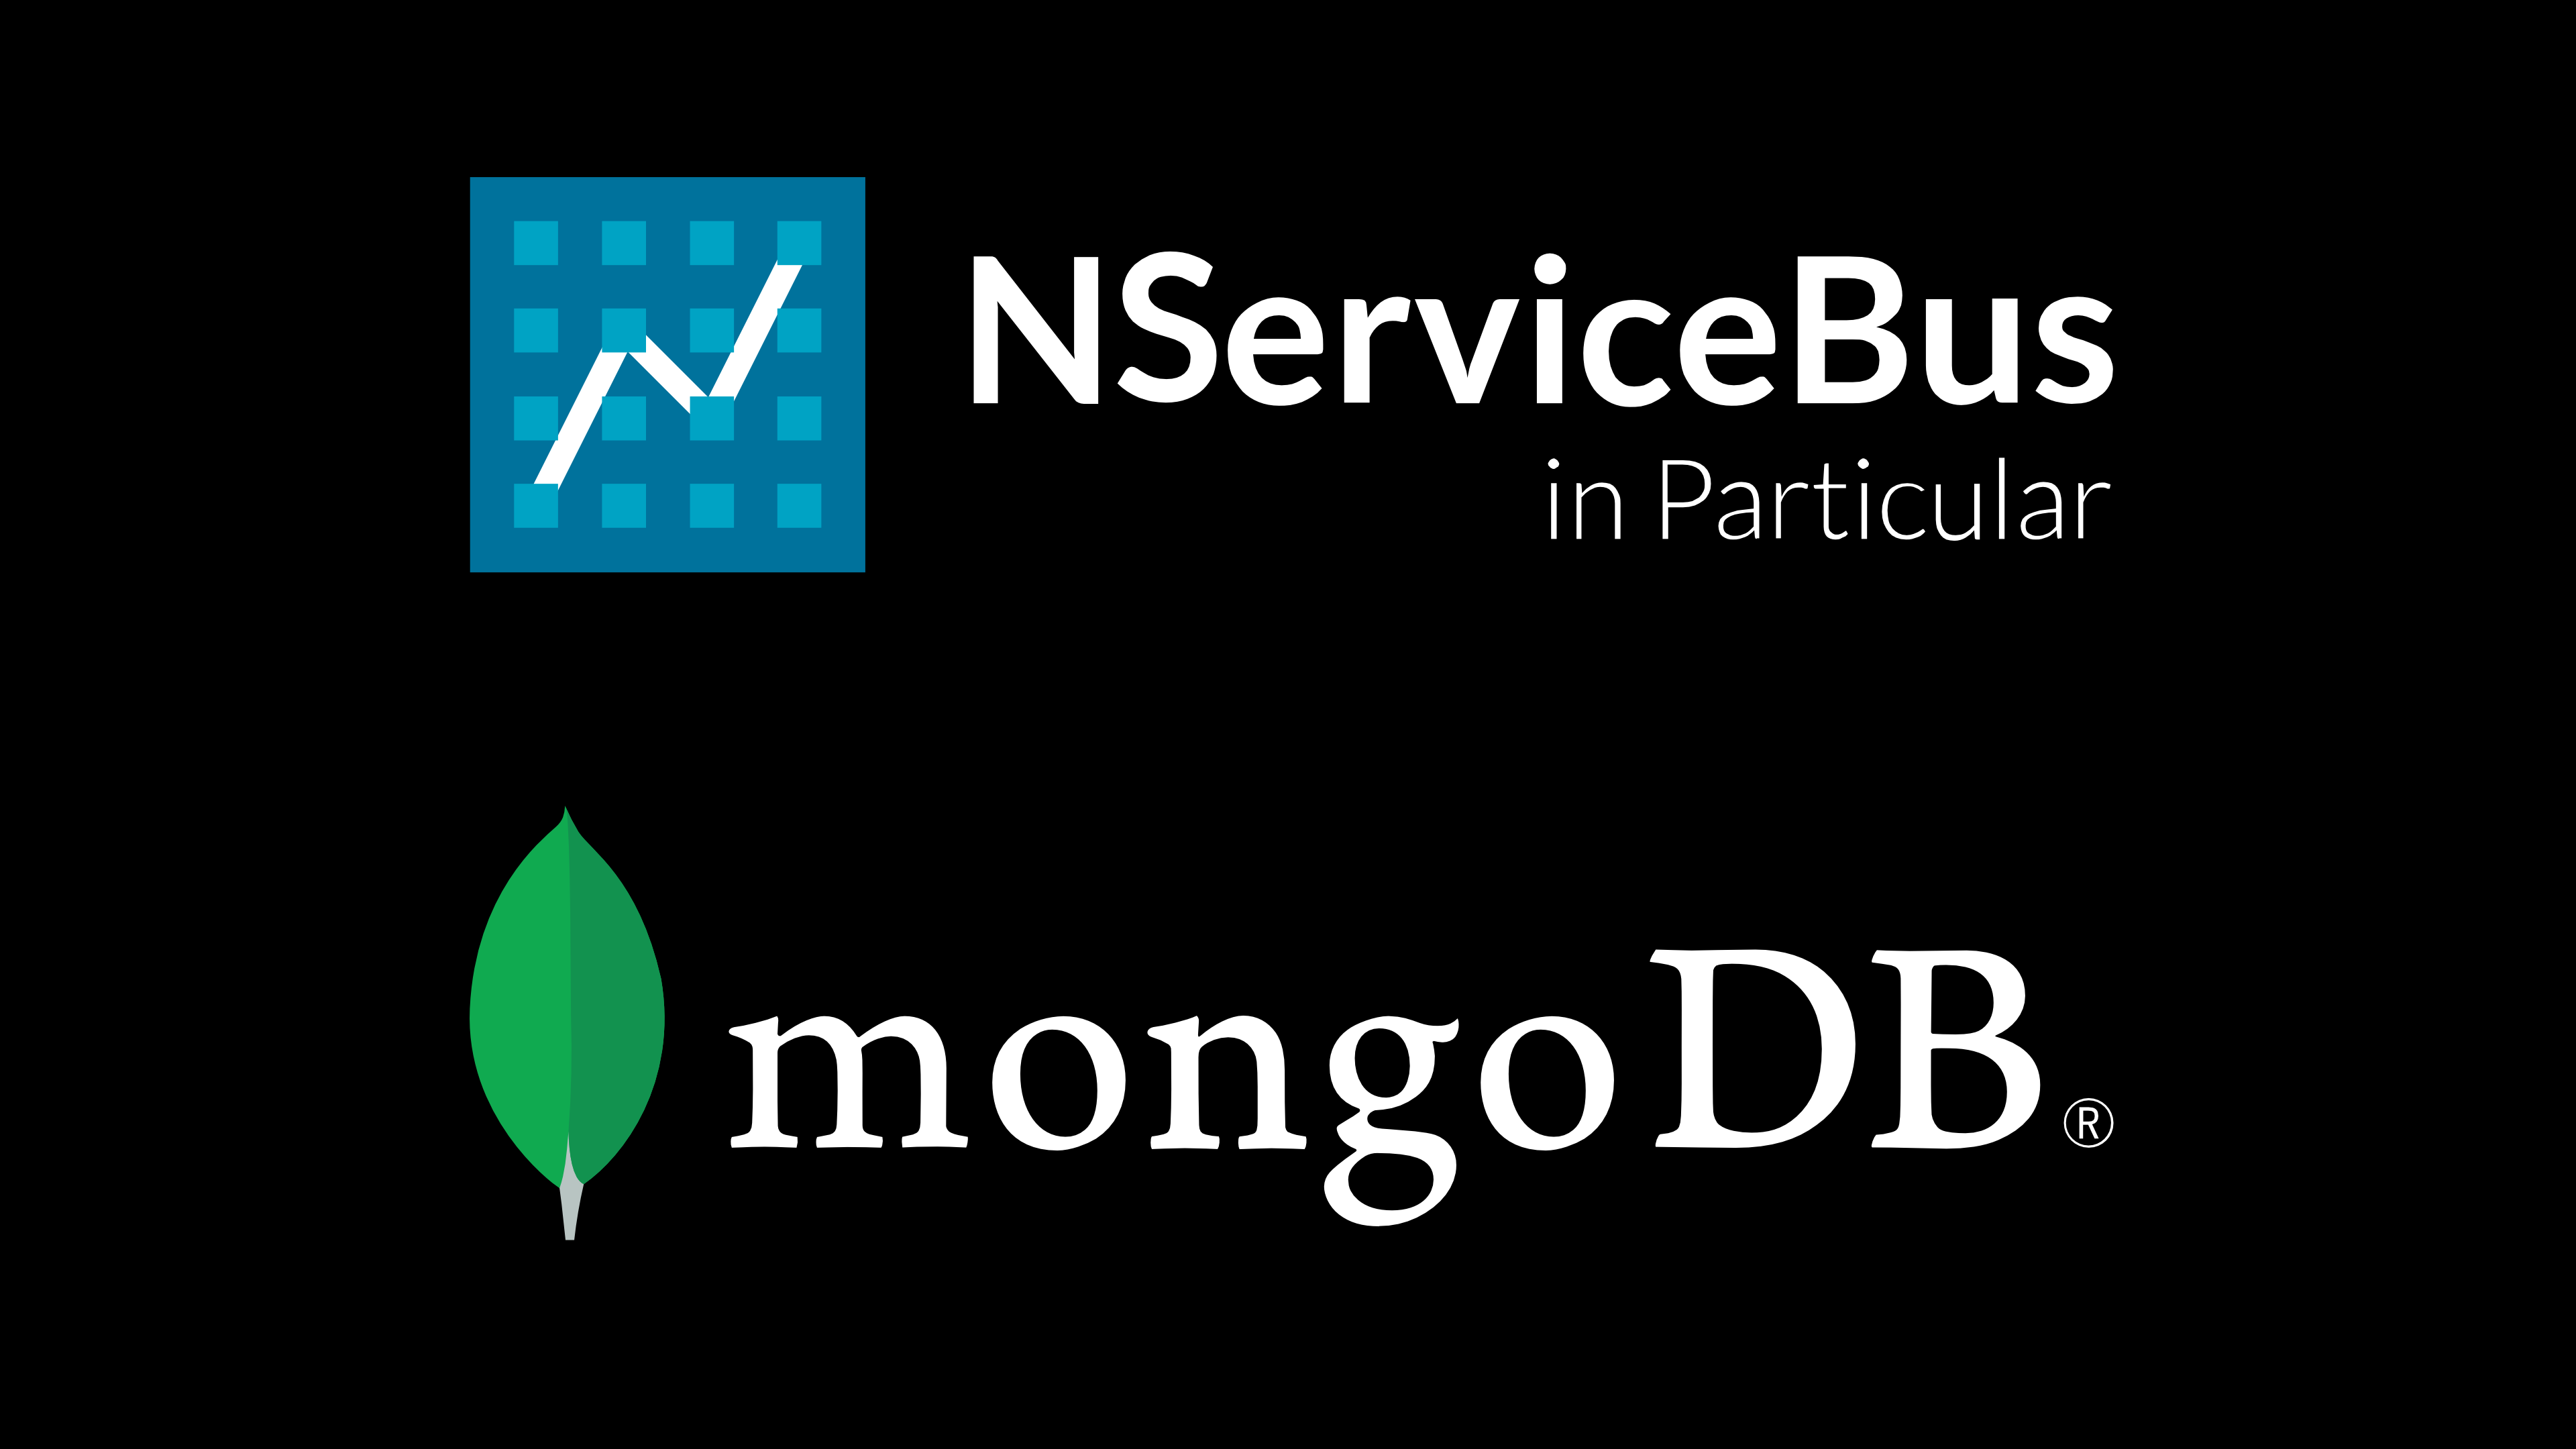 NServiceBus and MongoDB